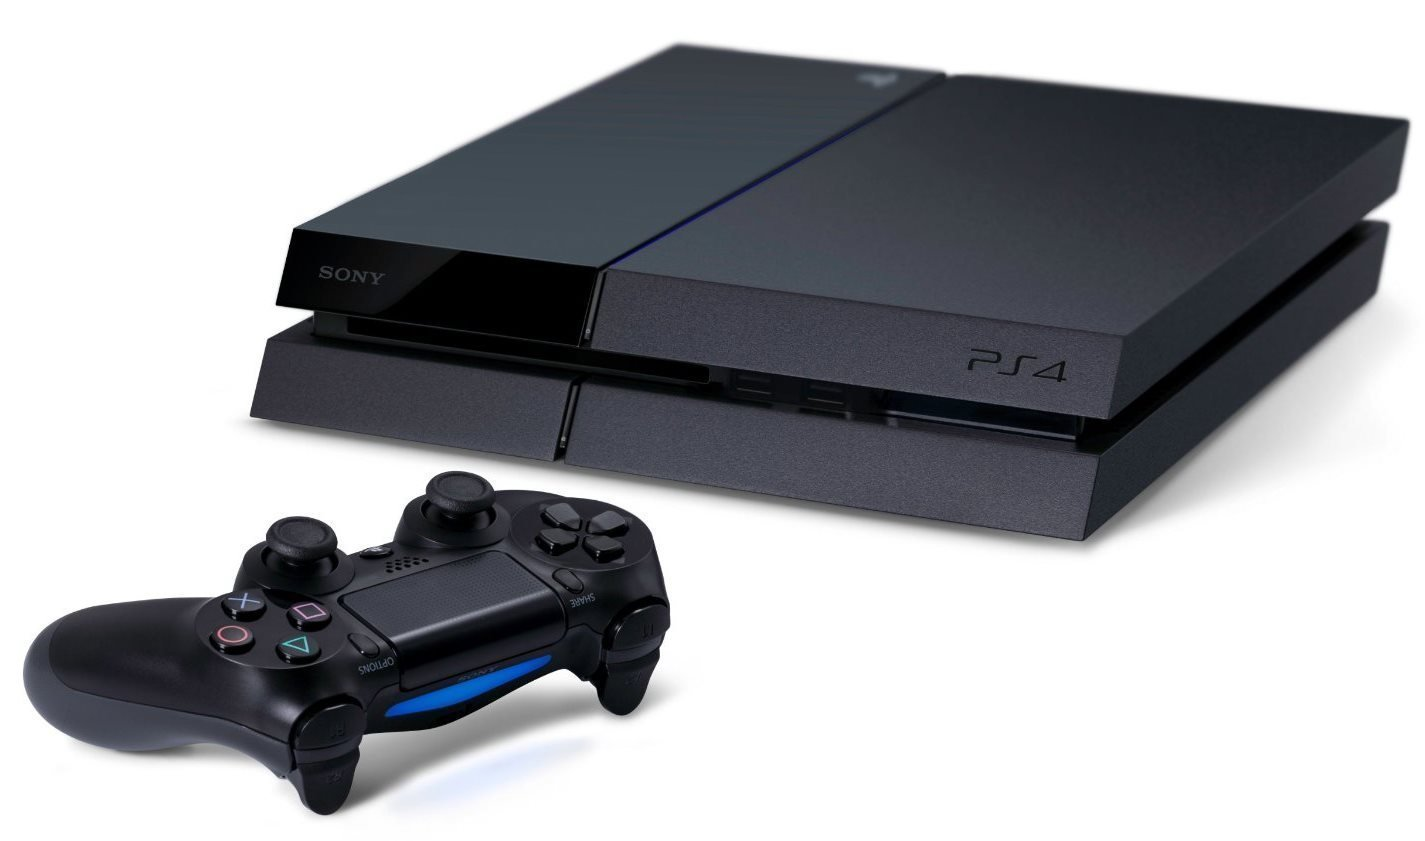 comprar playstation 4